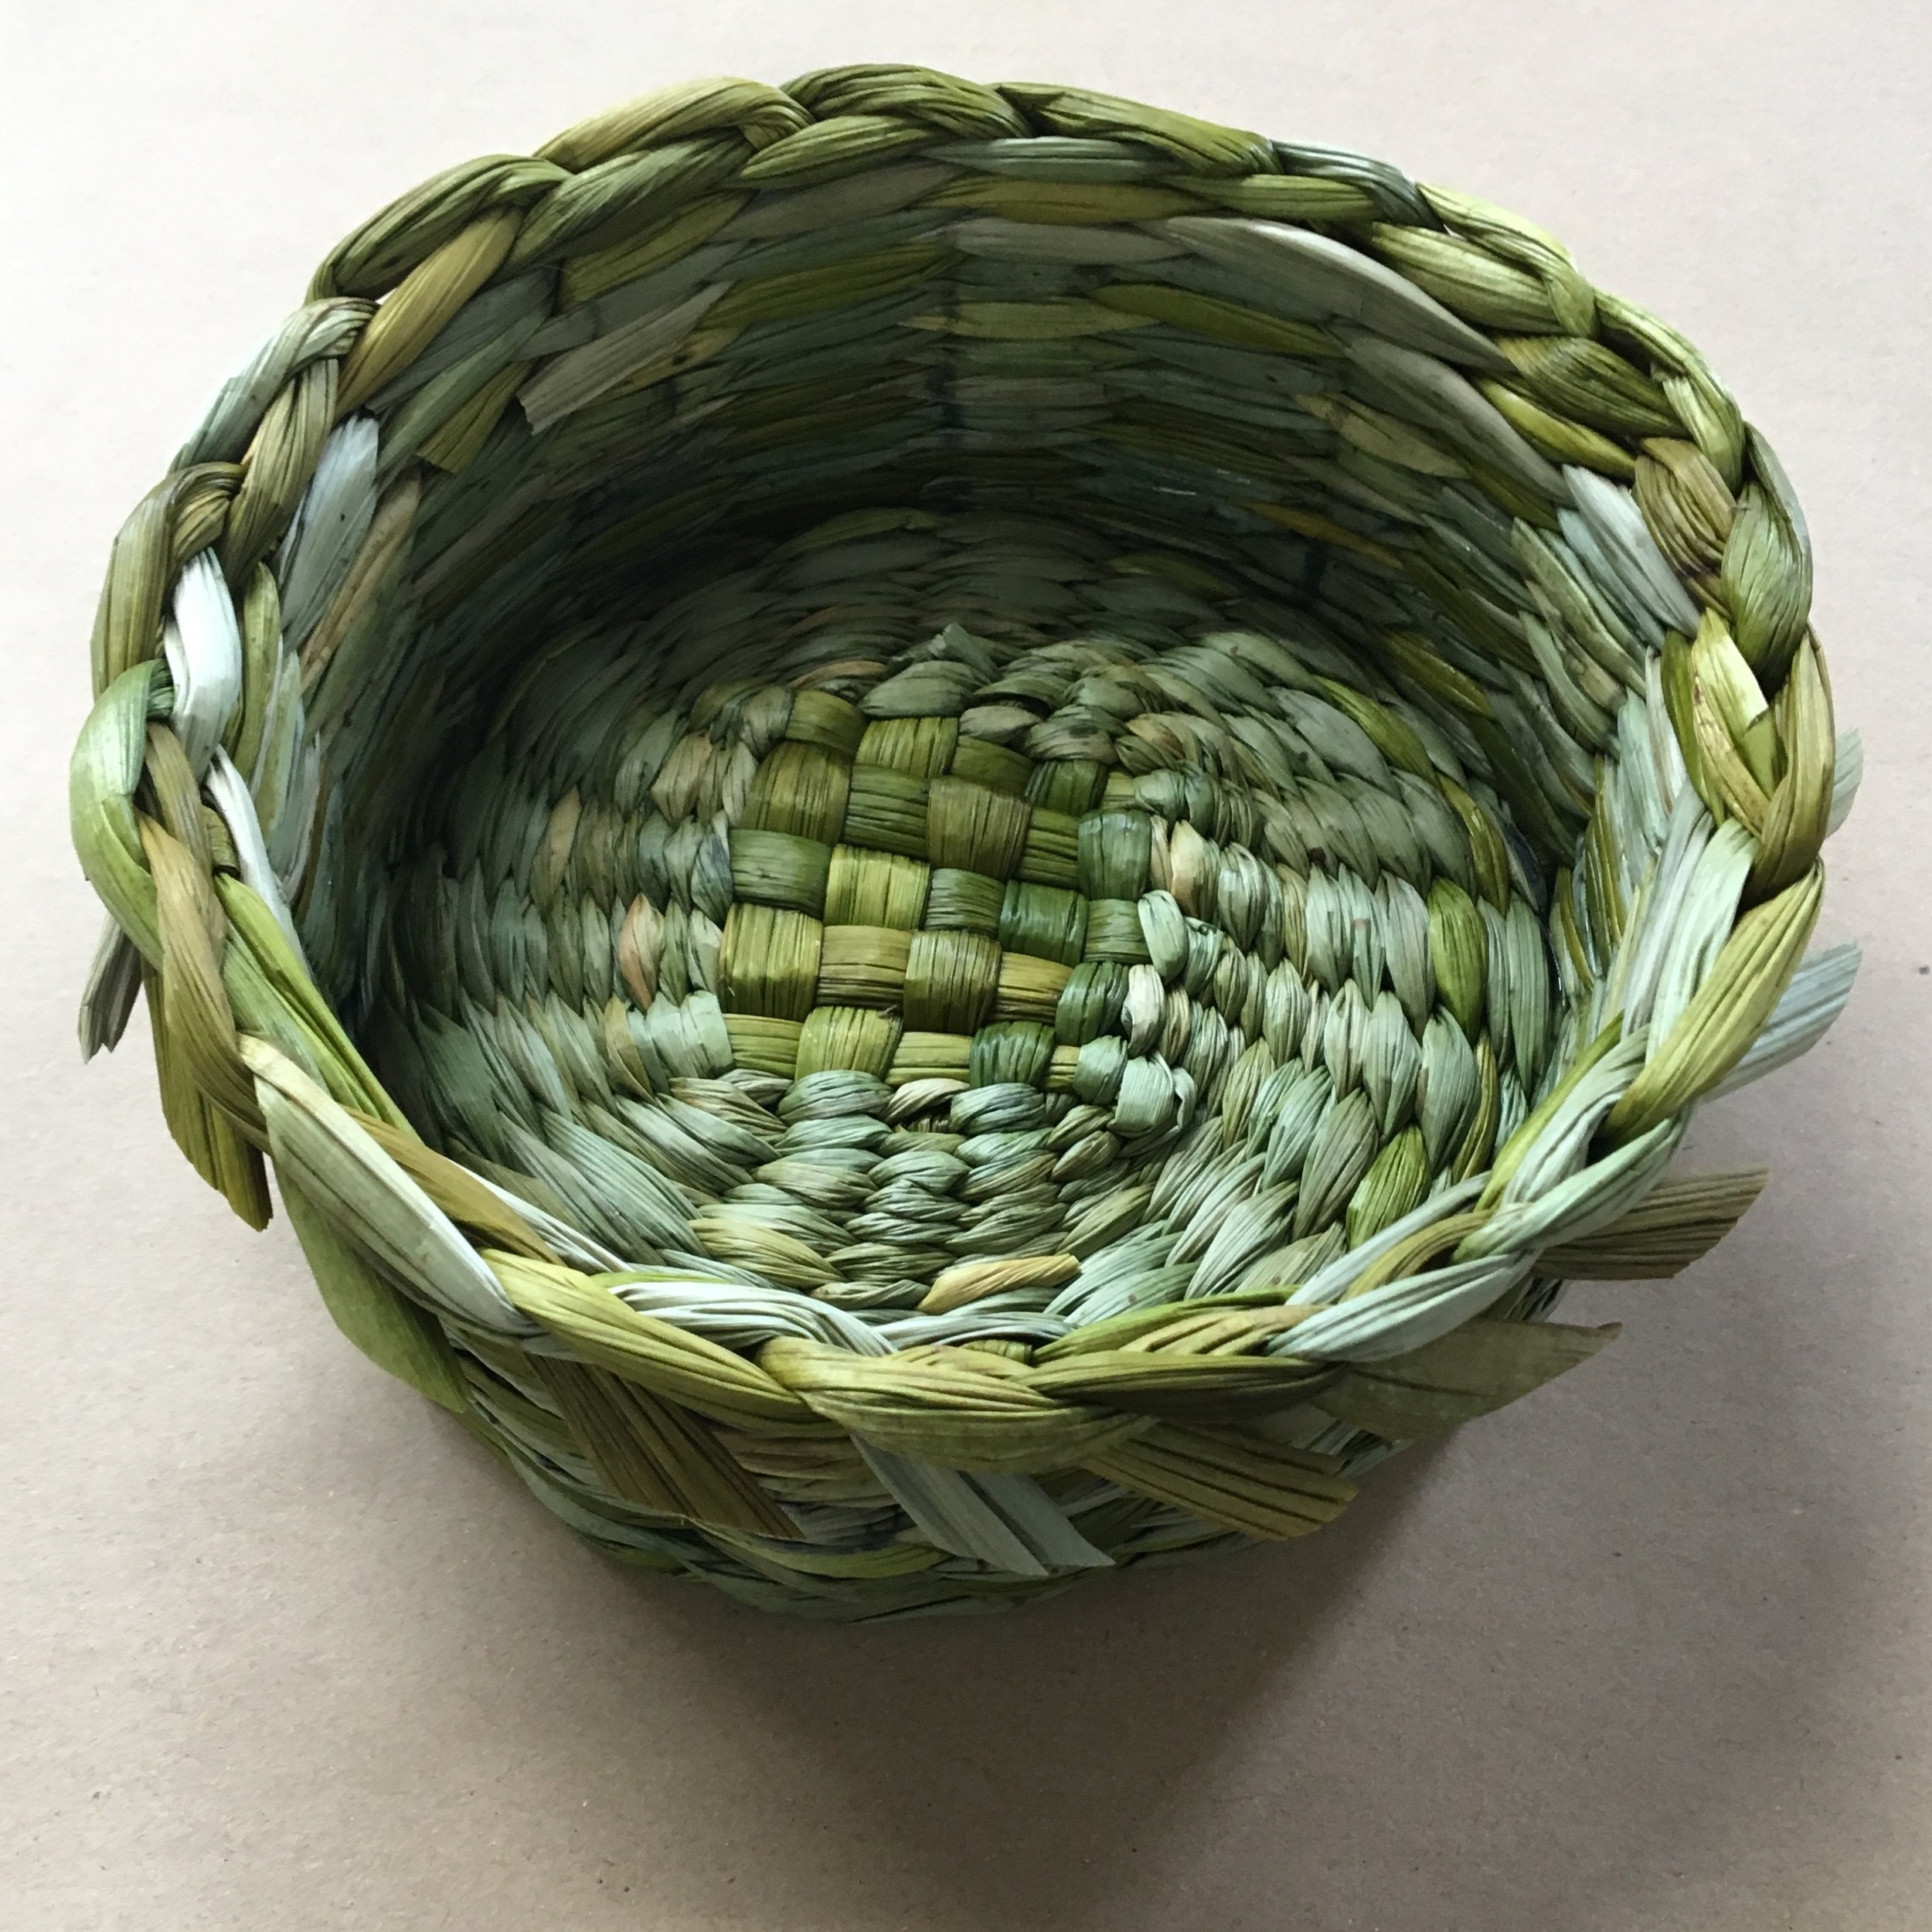 Basketmaking-7.jpg